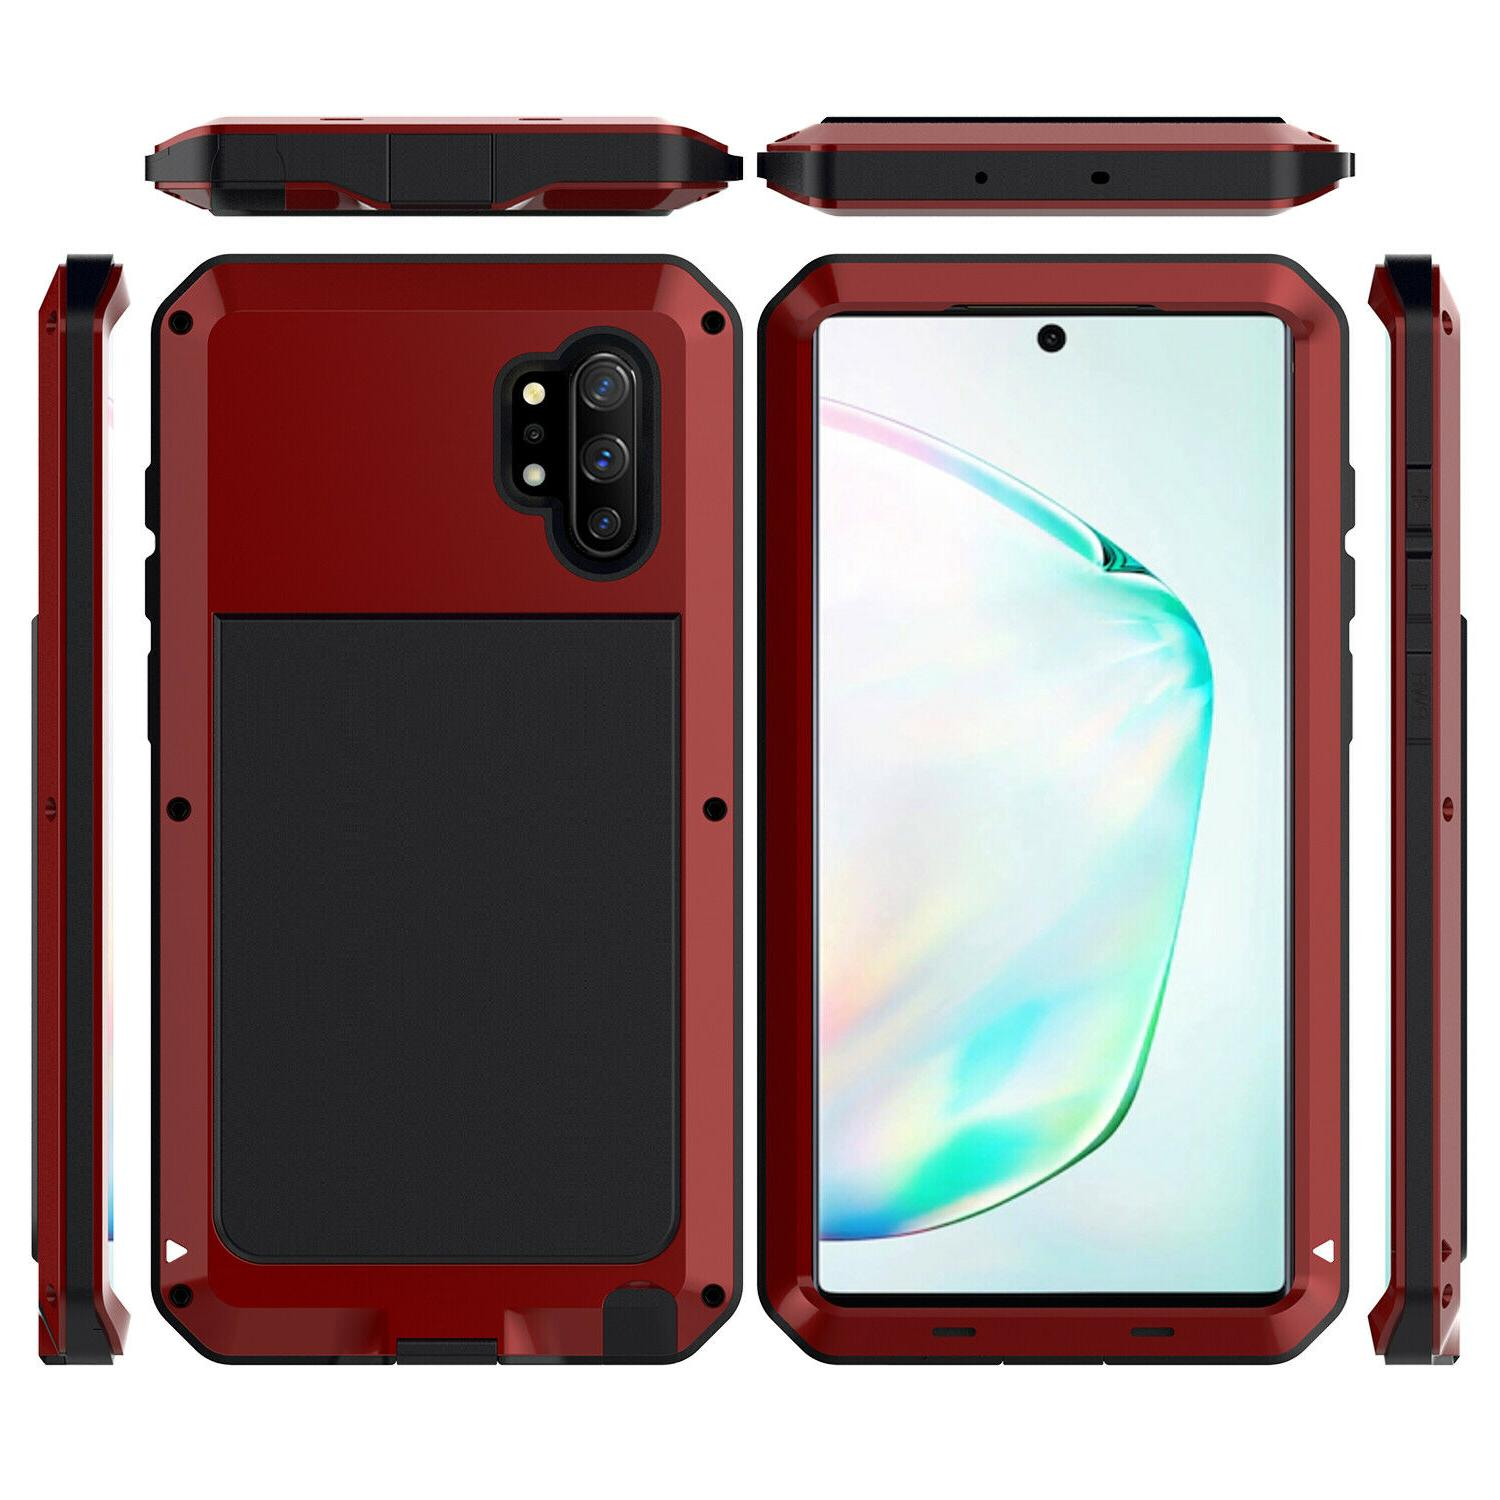 F Note Shockproof DUTY Case Cover